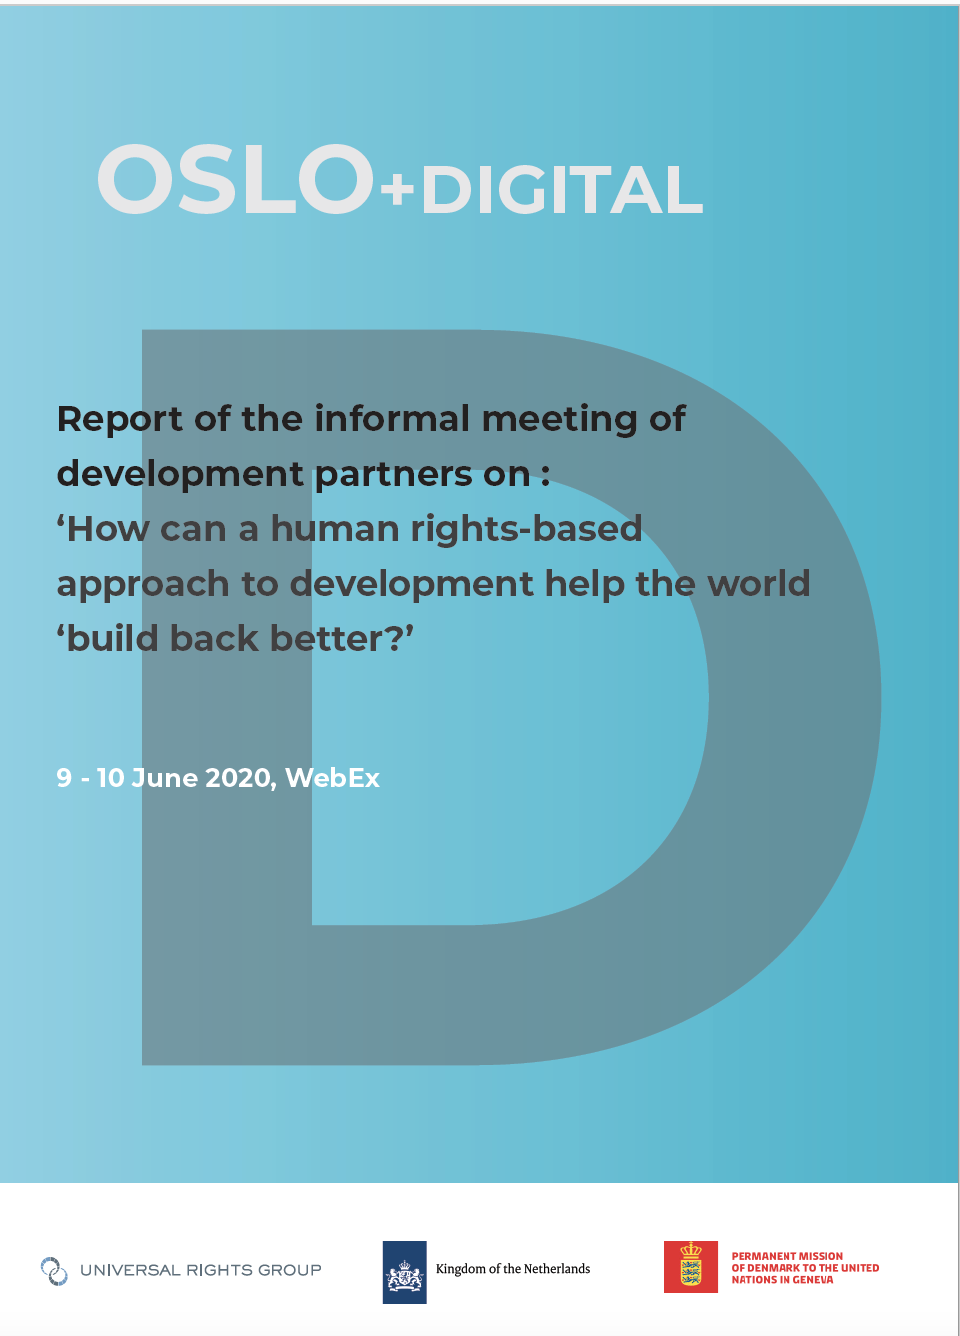 OSLO+Digital – International support for the national implementation of UN human rights recommendations, including as a contribution to the Sustainable Development Goals during the COVID-19 pandemic